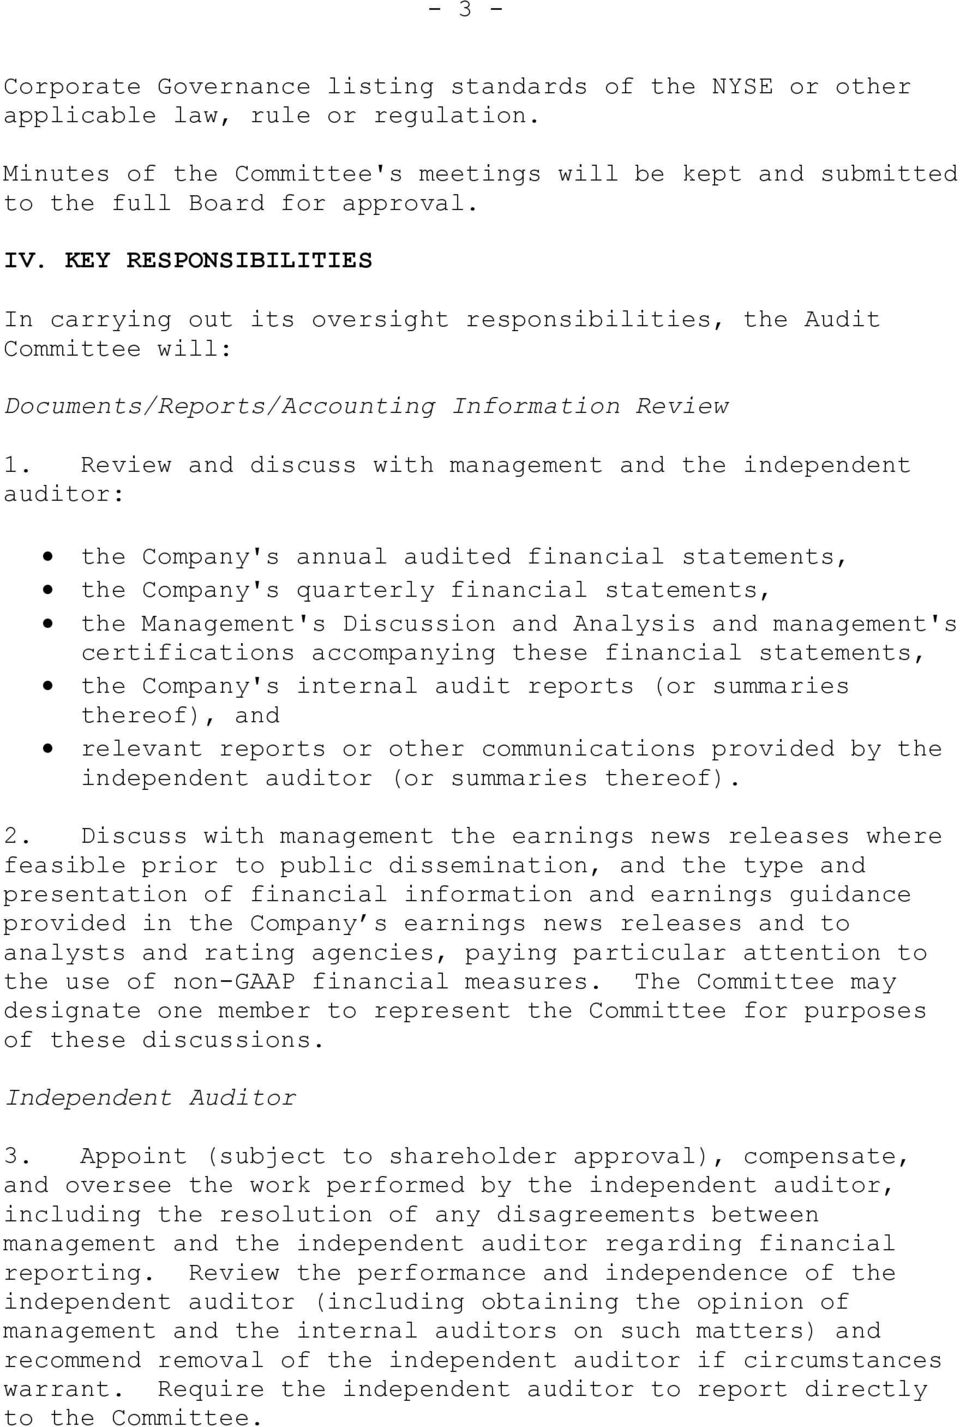 Review and discuss with management and the independent auditor: the Company's annual audited financial statements, the Company's quarterly financial statements, the Management's Discussion and